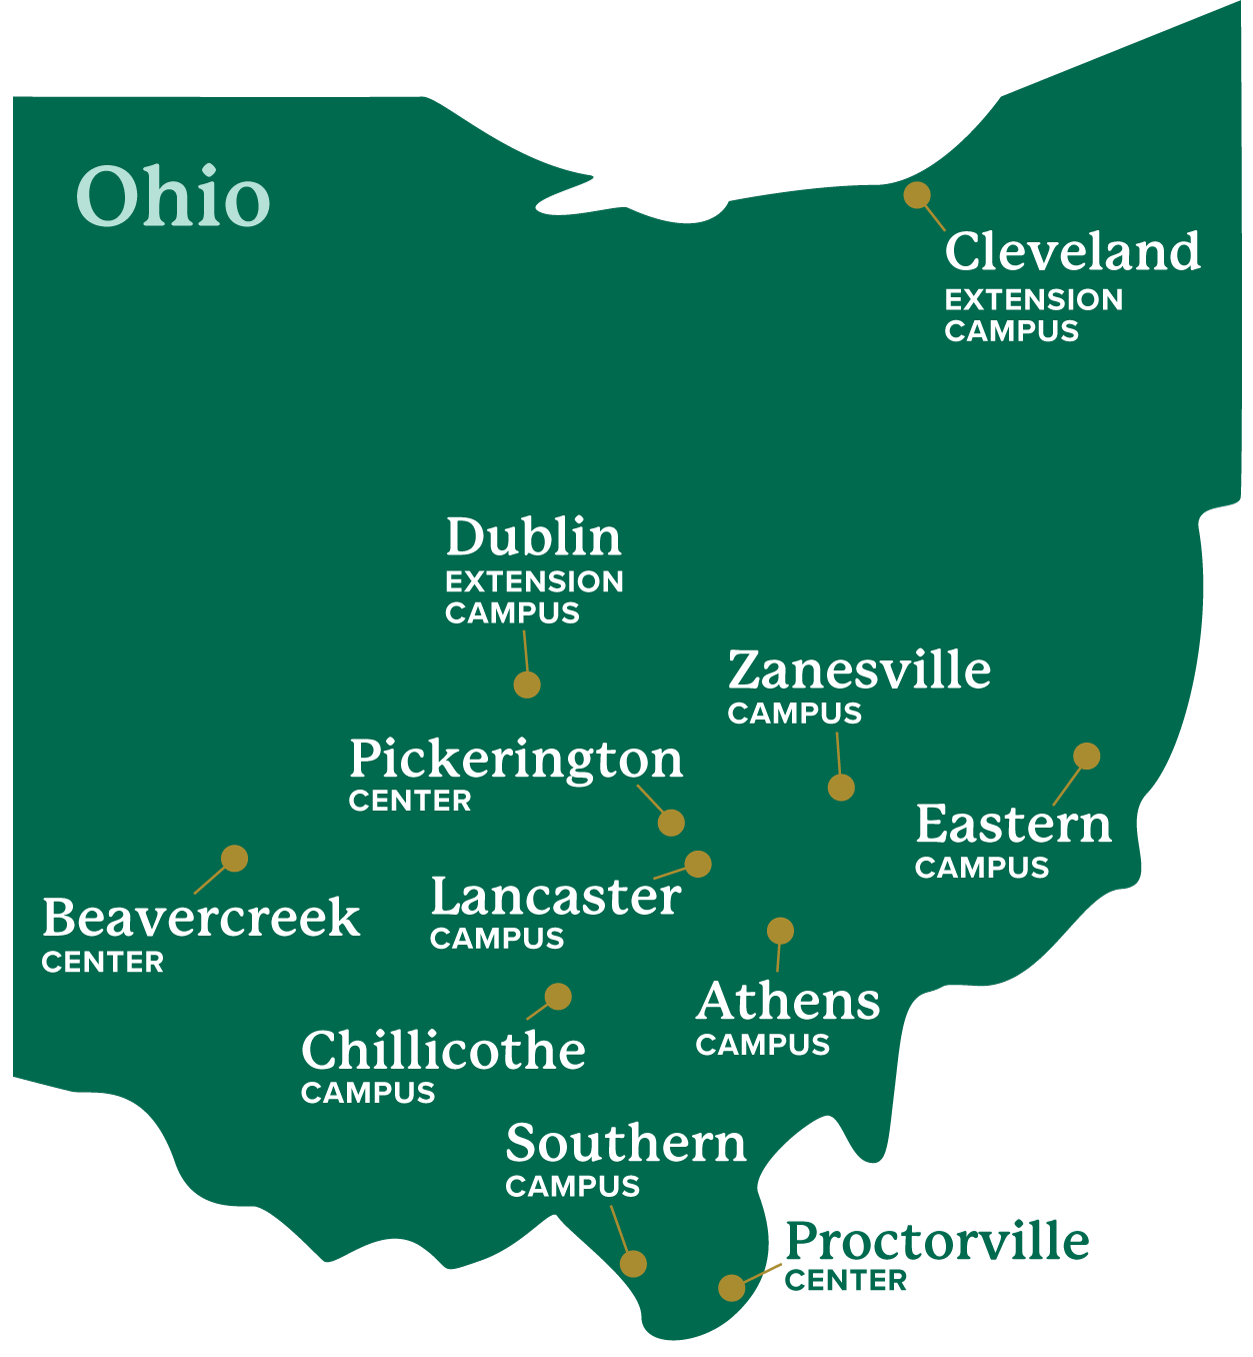 map of the state of Ohio with indicators for each Ohio University location